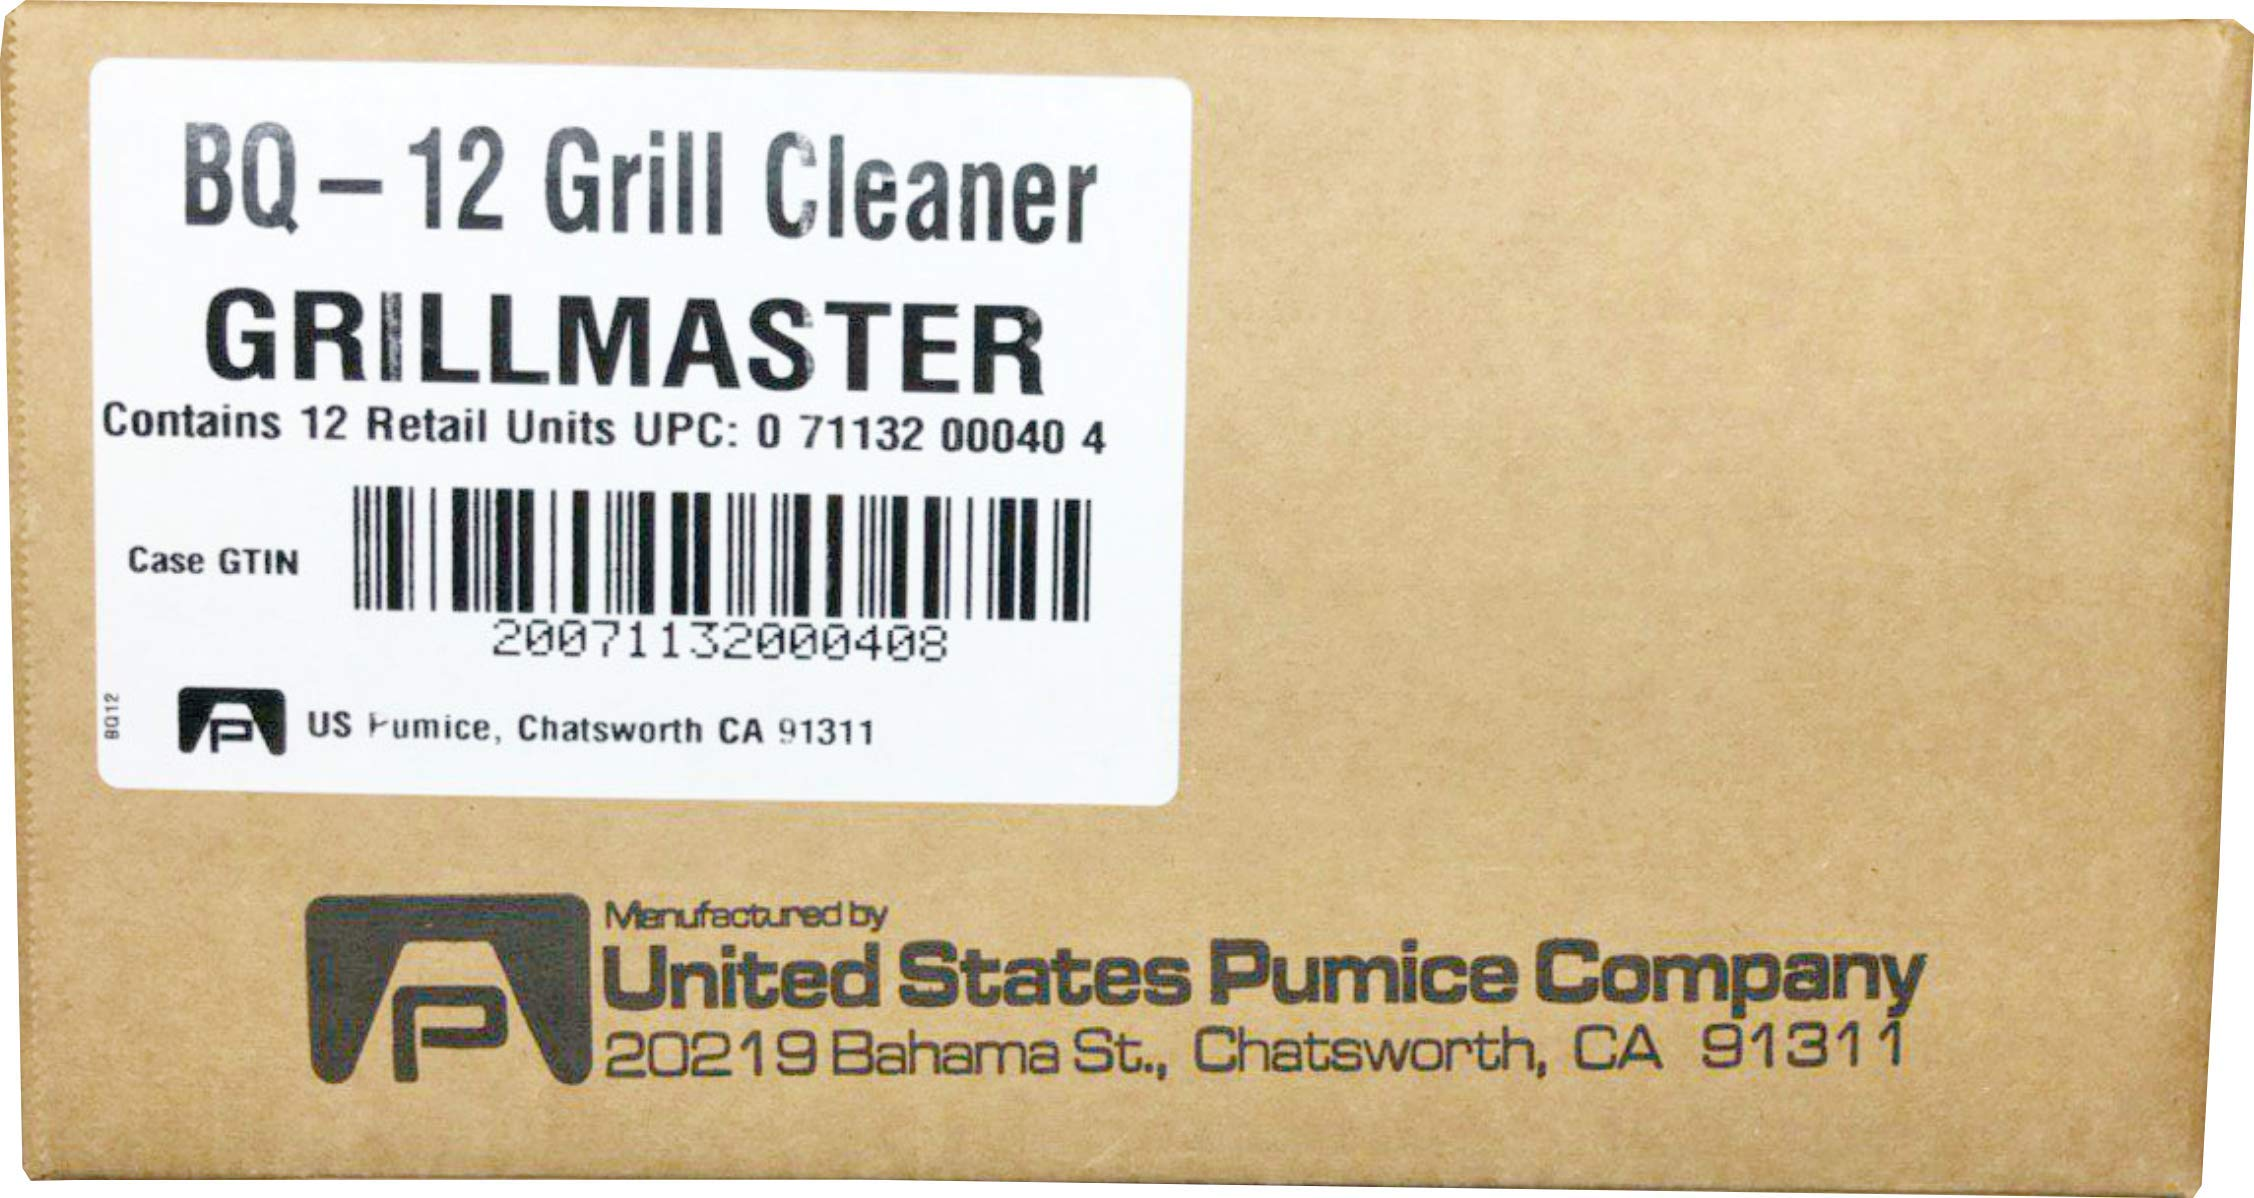 Grillmaster | BQ-12 | BBQ Cleaner Pumice Stone | Case of 12 | GrillBrick for Grill Cleaning | Medium Size | 5.75x2.75x2.75 inches (12) by GRILLMASTER (Image #7)